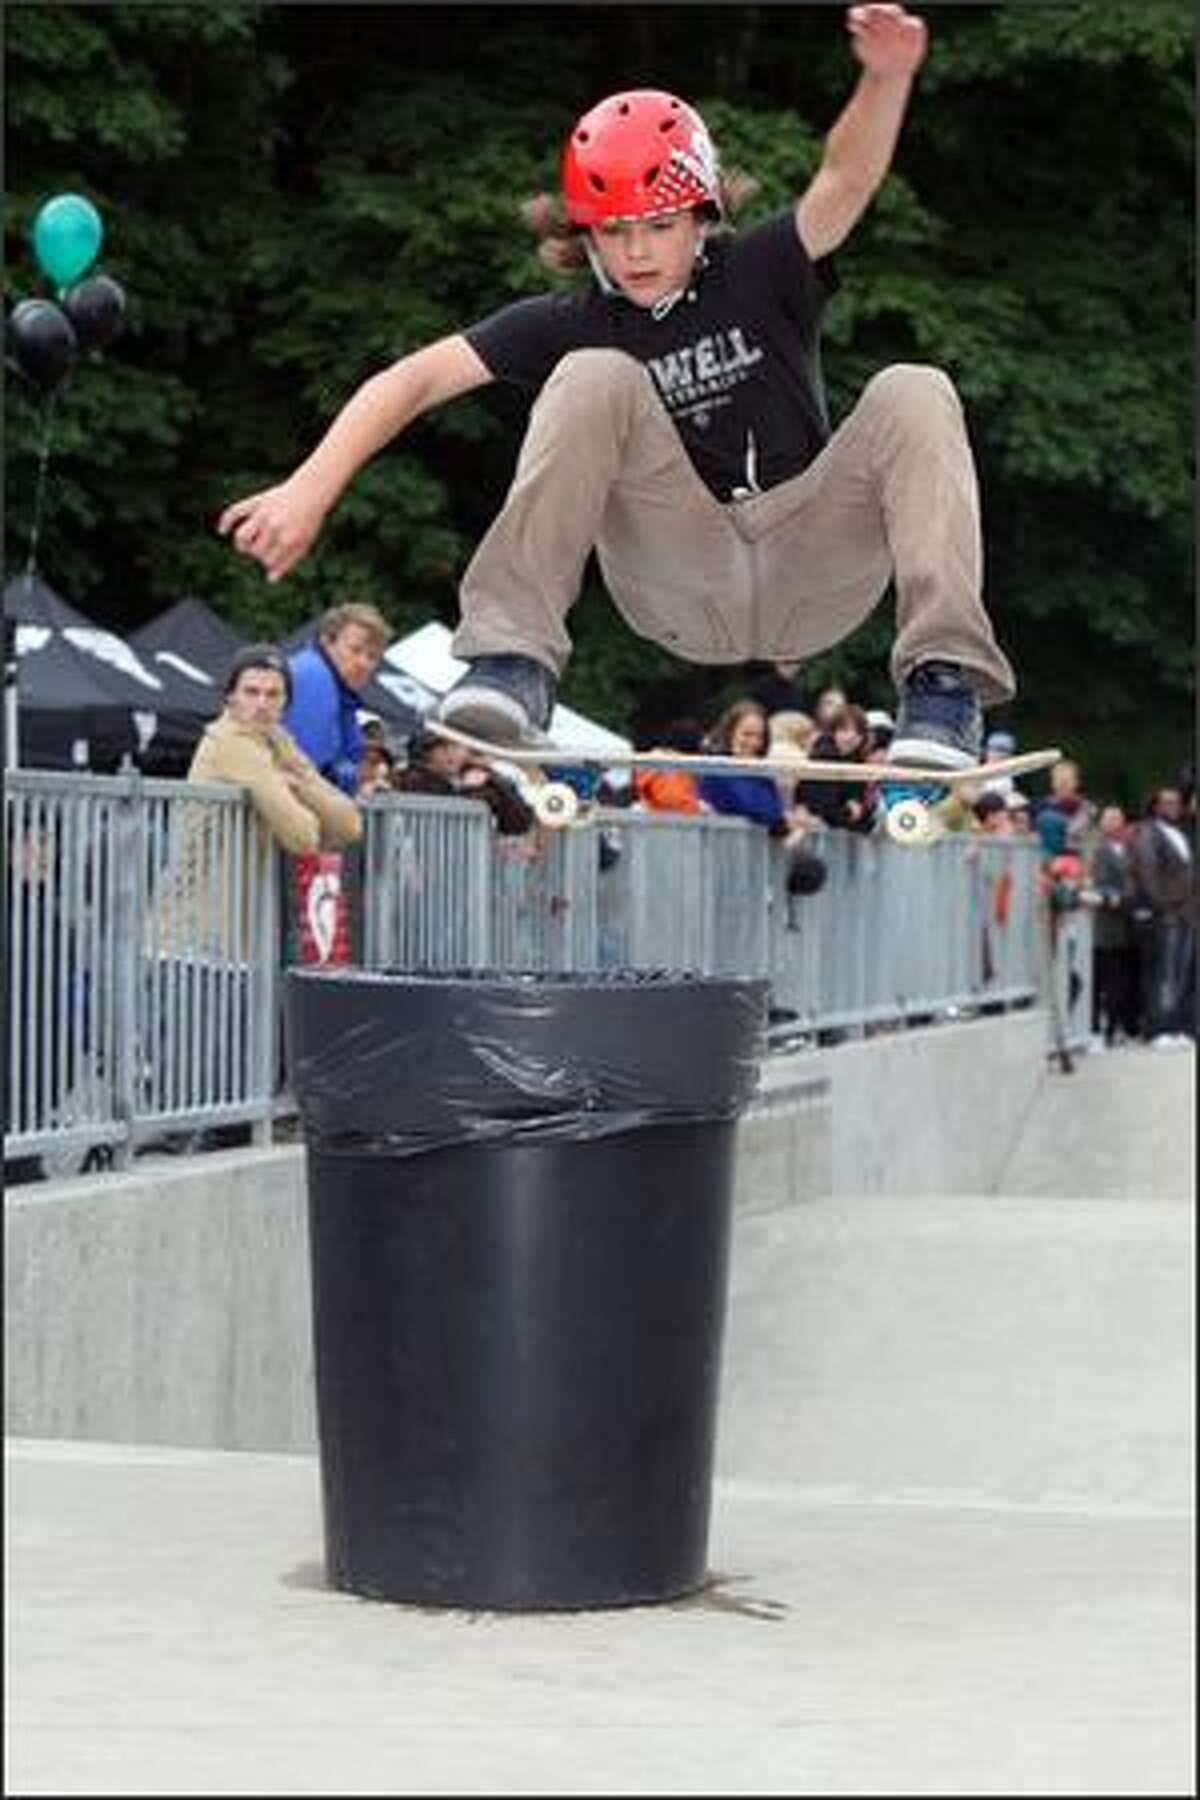 Brogan Robinson, 14, from Portland, leaps over a garbage can during a skateboard contest.